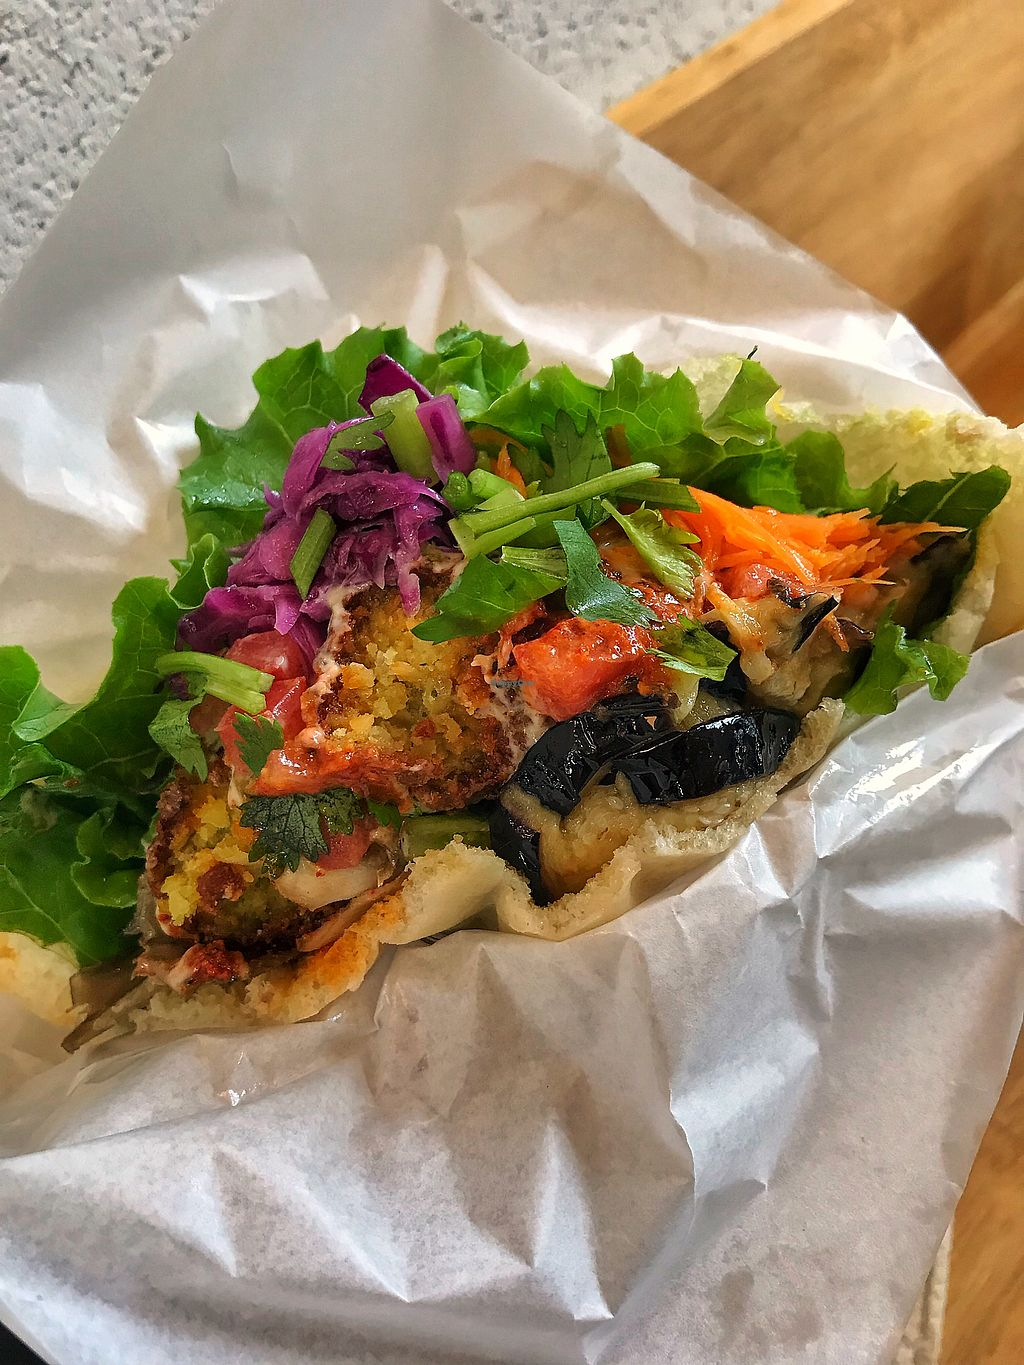 """Photo of Ballon  by <a href=""""/members/profile/EriJimbo"""">EriJimbo</a> <br/>Inside the yummy falafel sandwich  <br/> October 20, 2017  - <a href='/contact/abuse/image/97750/316976'>Report</a>"""